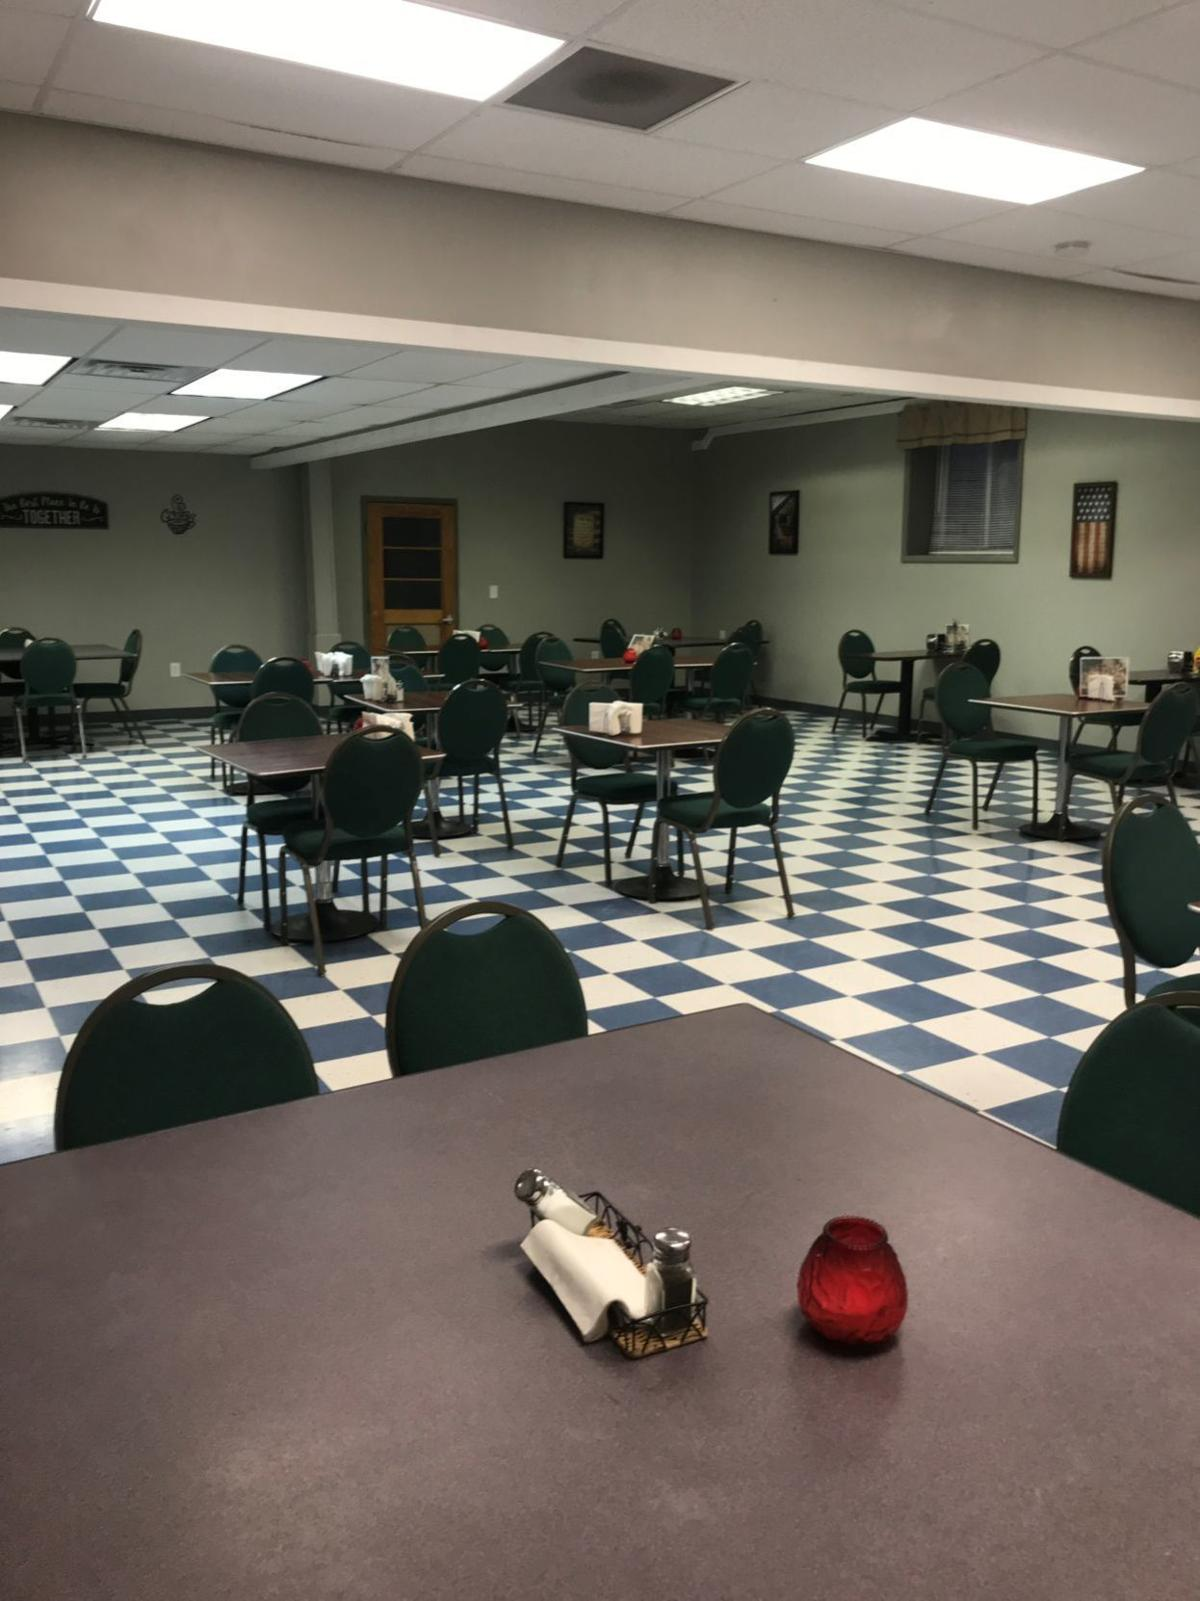 Reliance Firemen's Club dining room